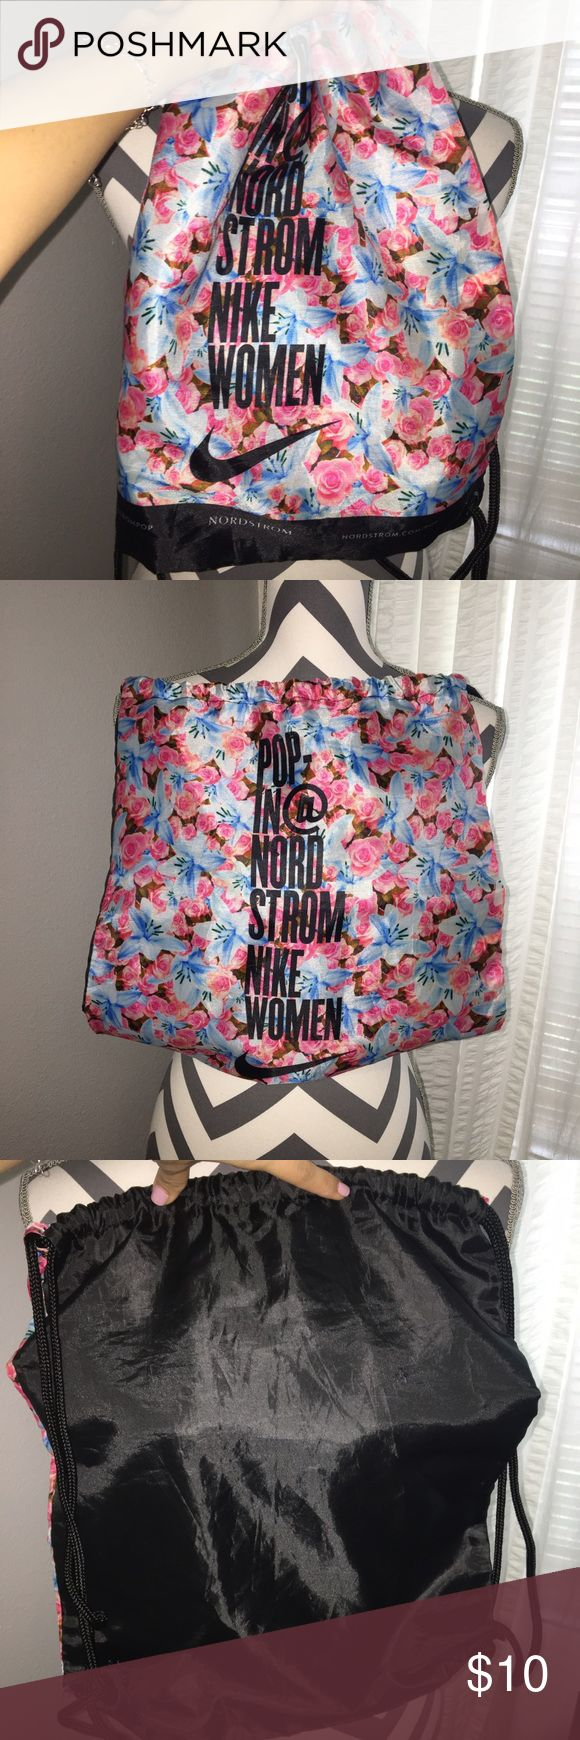 Nordstrom Nike Floral Drawstring Gym Bag Very cute light gym bag. In excellent condition. No stains, rips, or tears. From smoke free home Nike Bags